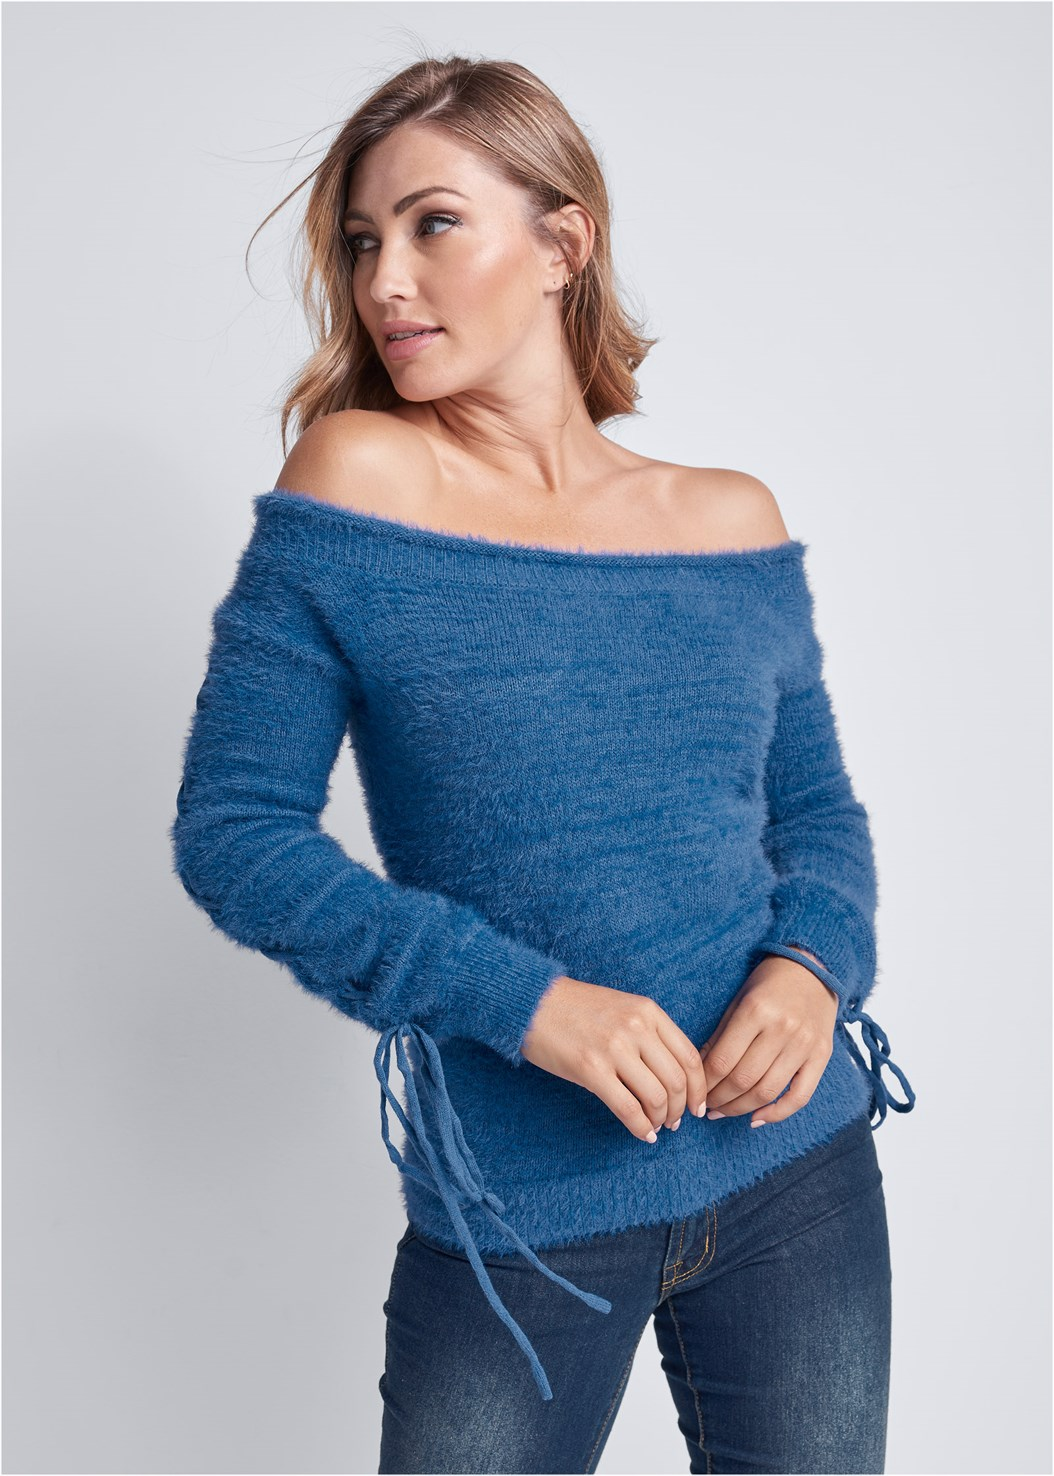 Cozy Off Shoulder Sweater,Mid Rise Color Skinny Jeans,Strapless Bra With Geo Lace,Faux Shearling Detail Boot